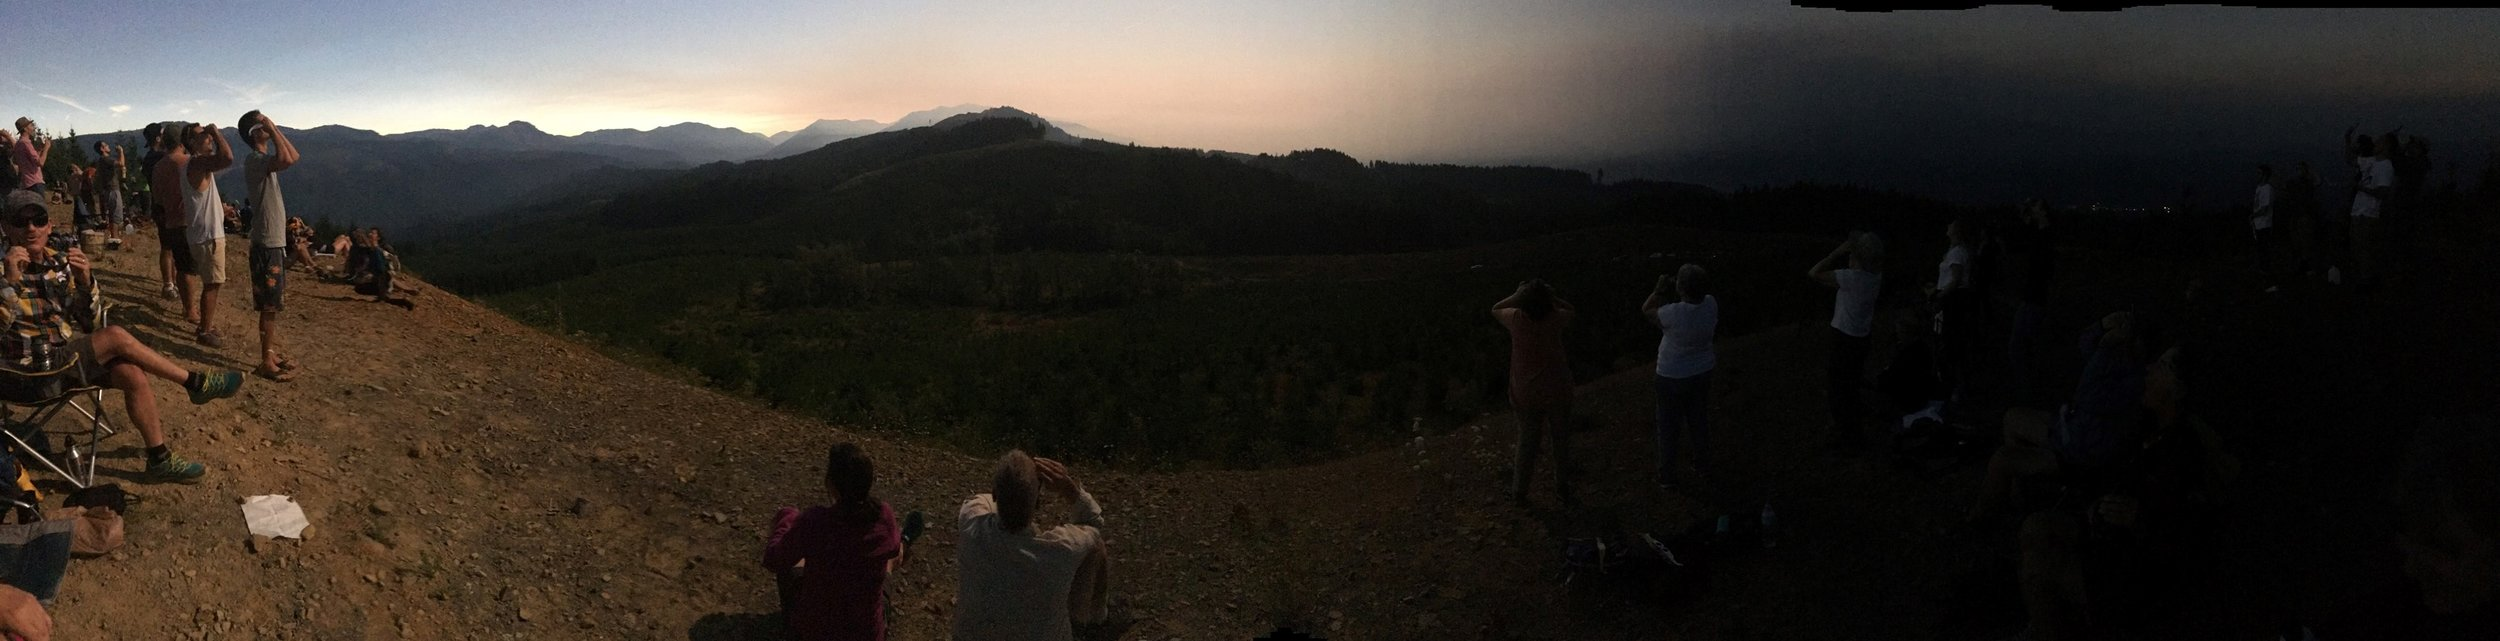 Cynthia Hartwig's panoramic photo of the eclipse